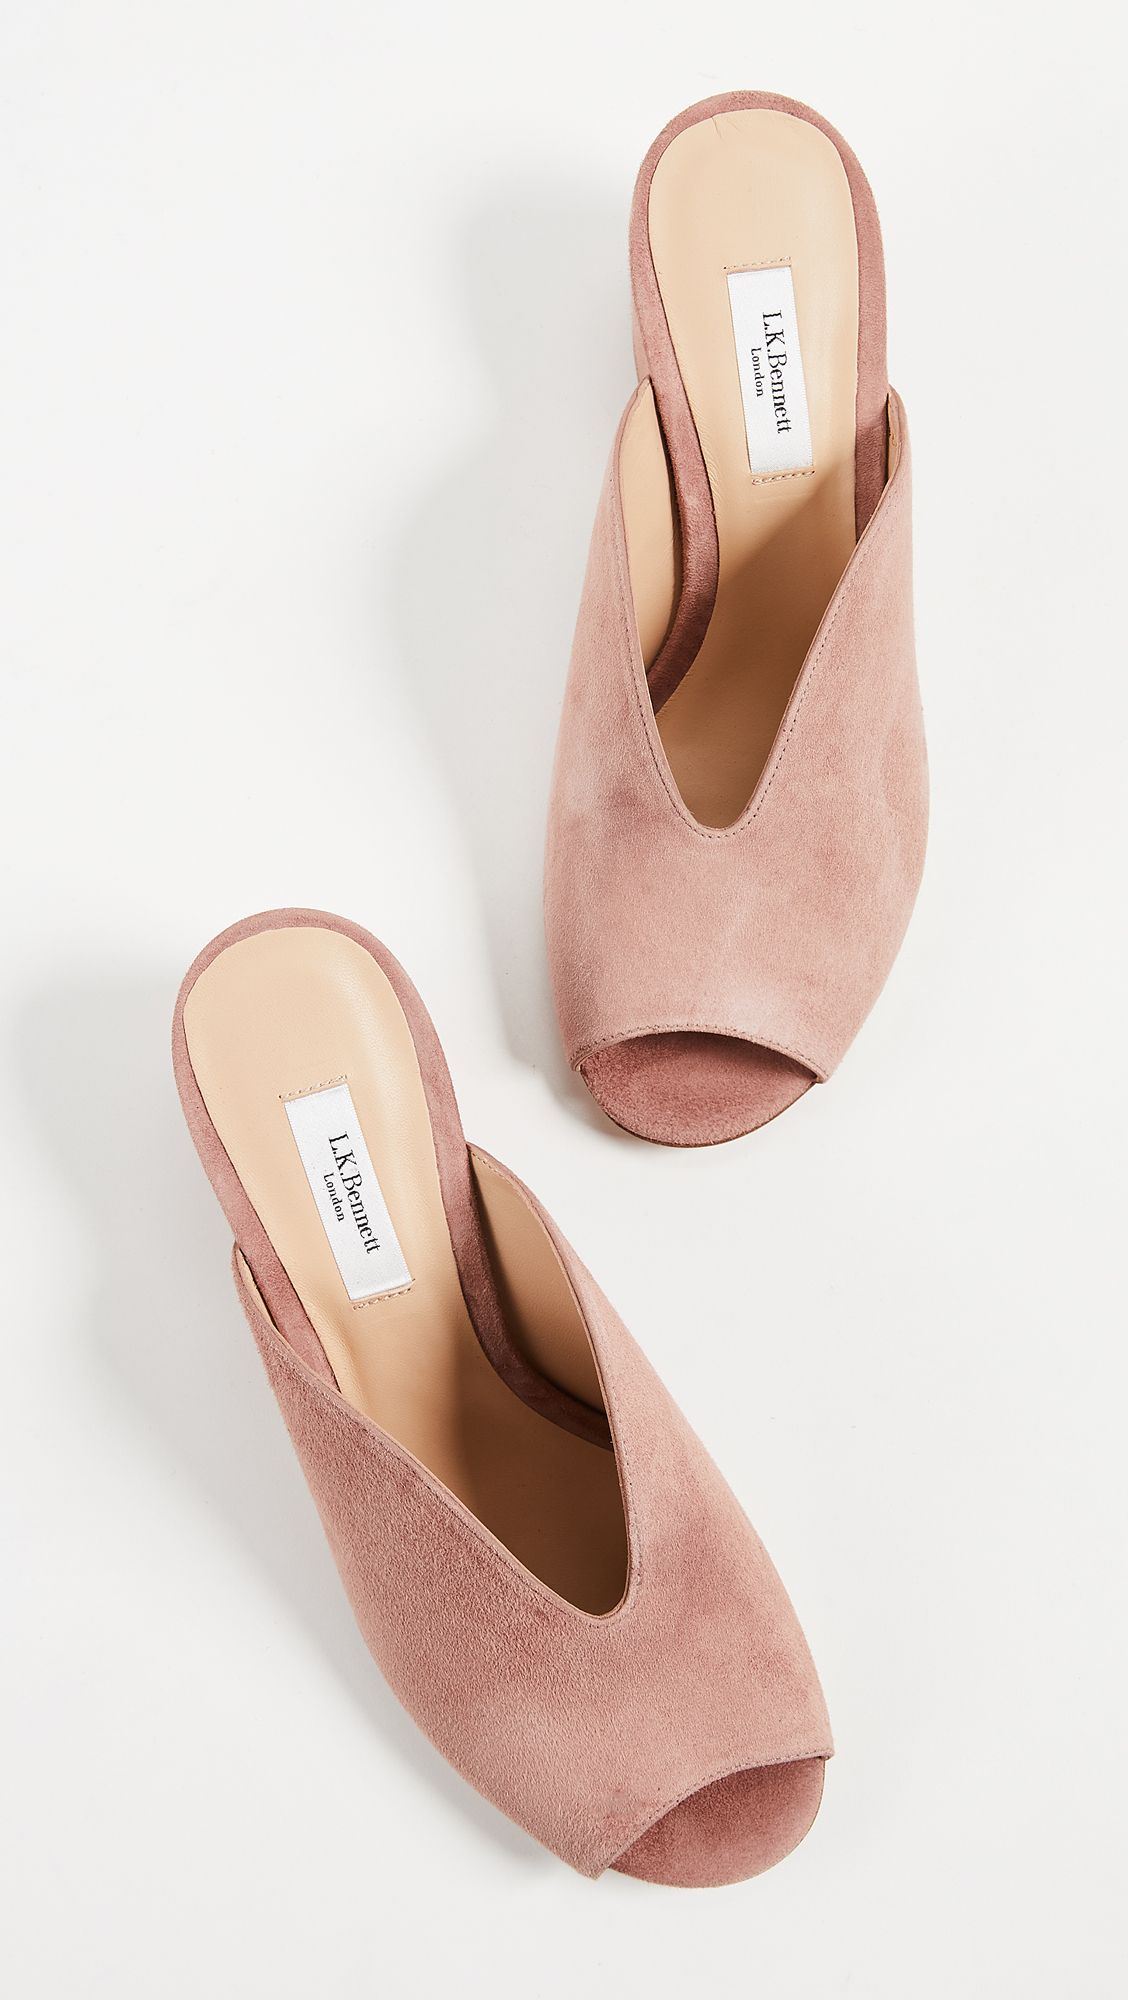 50ad552946b Kollette - L.K. Bennett Ola Block Heel Mules - The world s largest fashion  stores in one place!